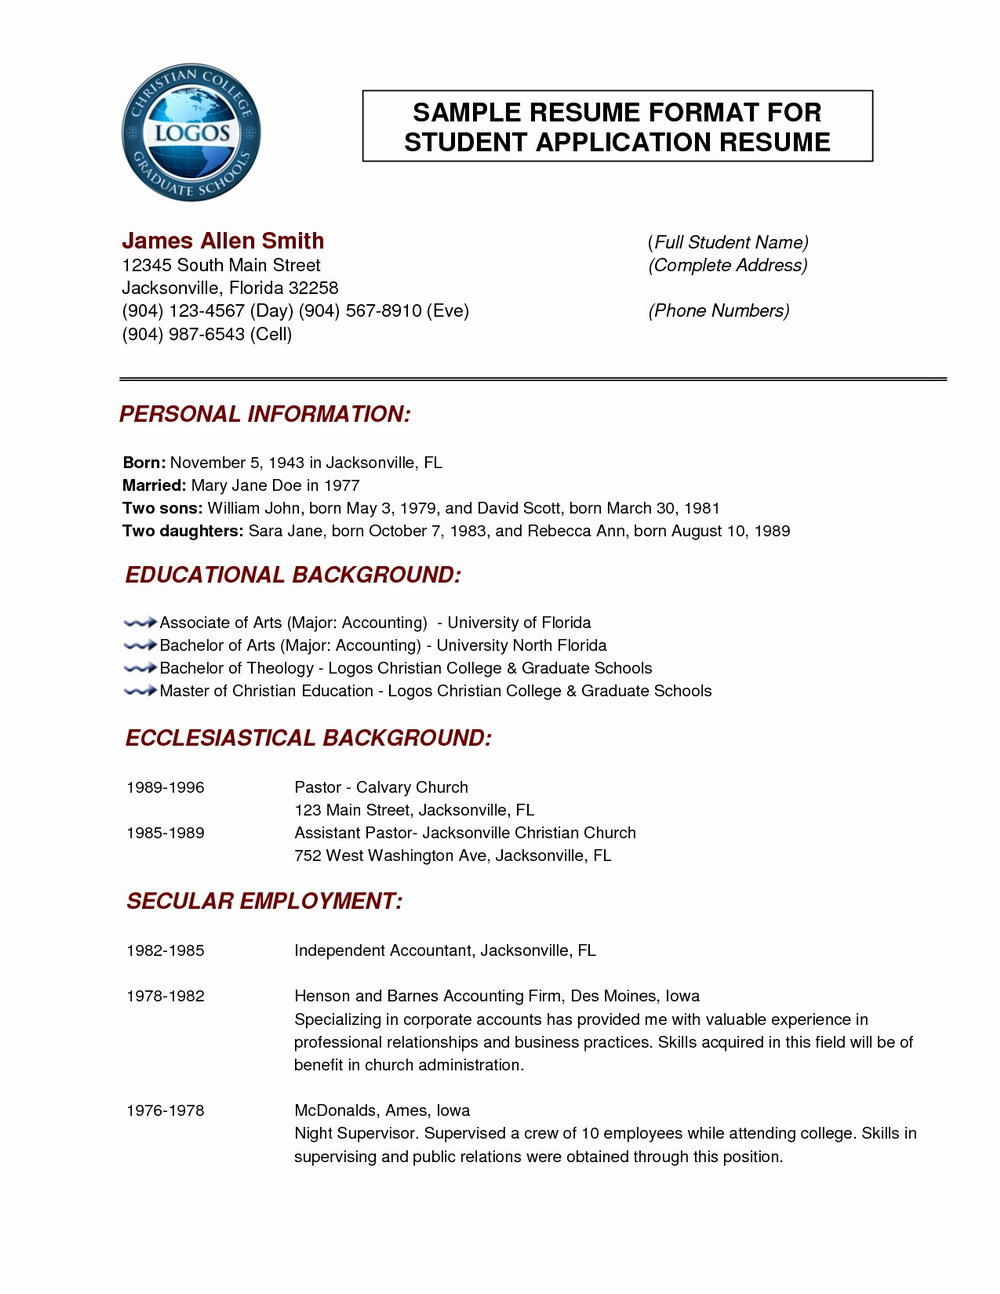 Latest Resume Format Word File Download